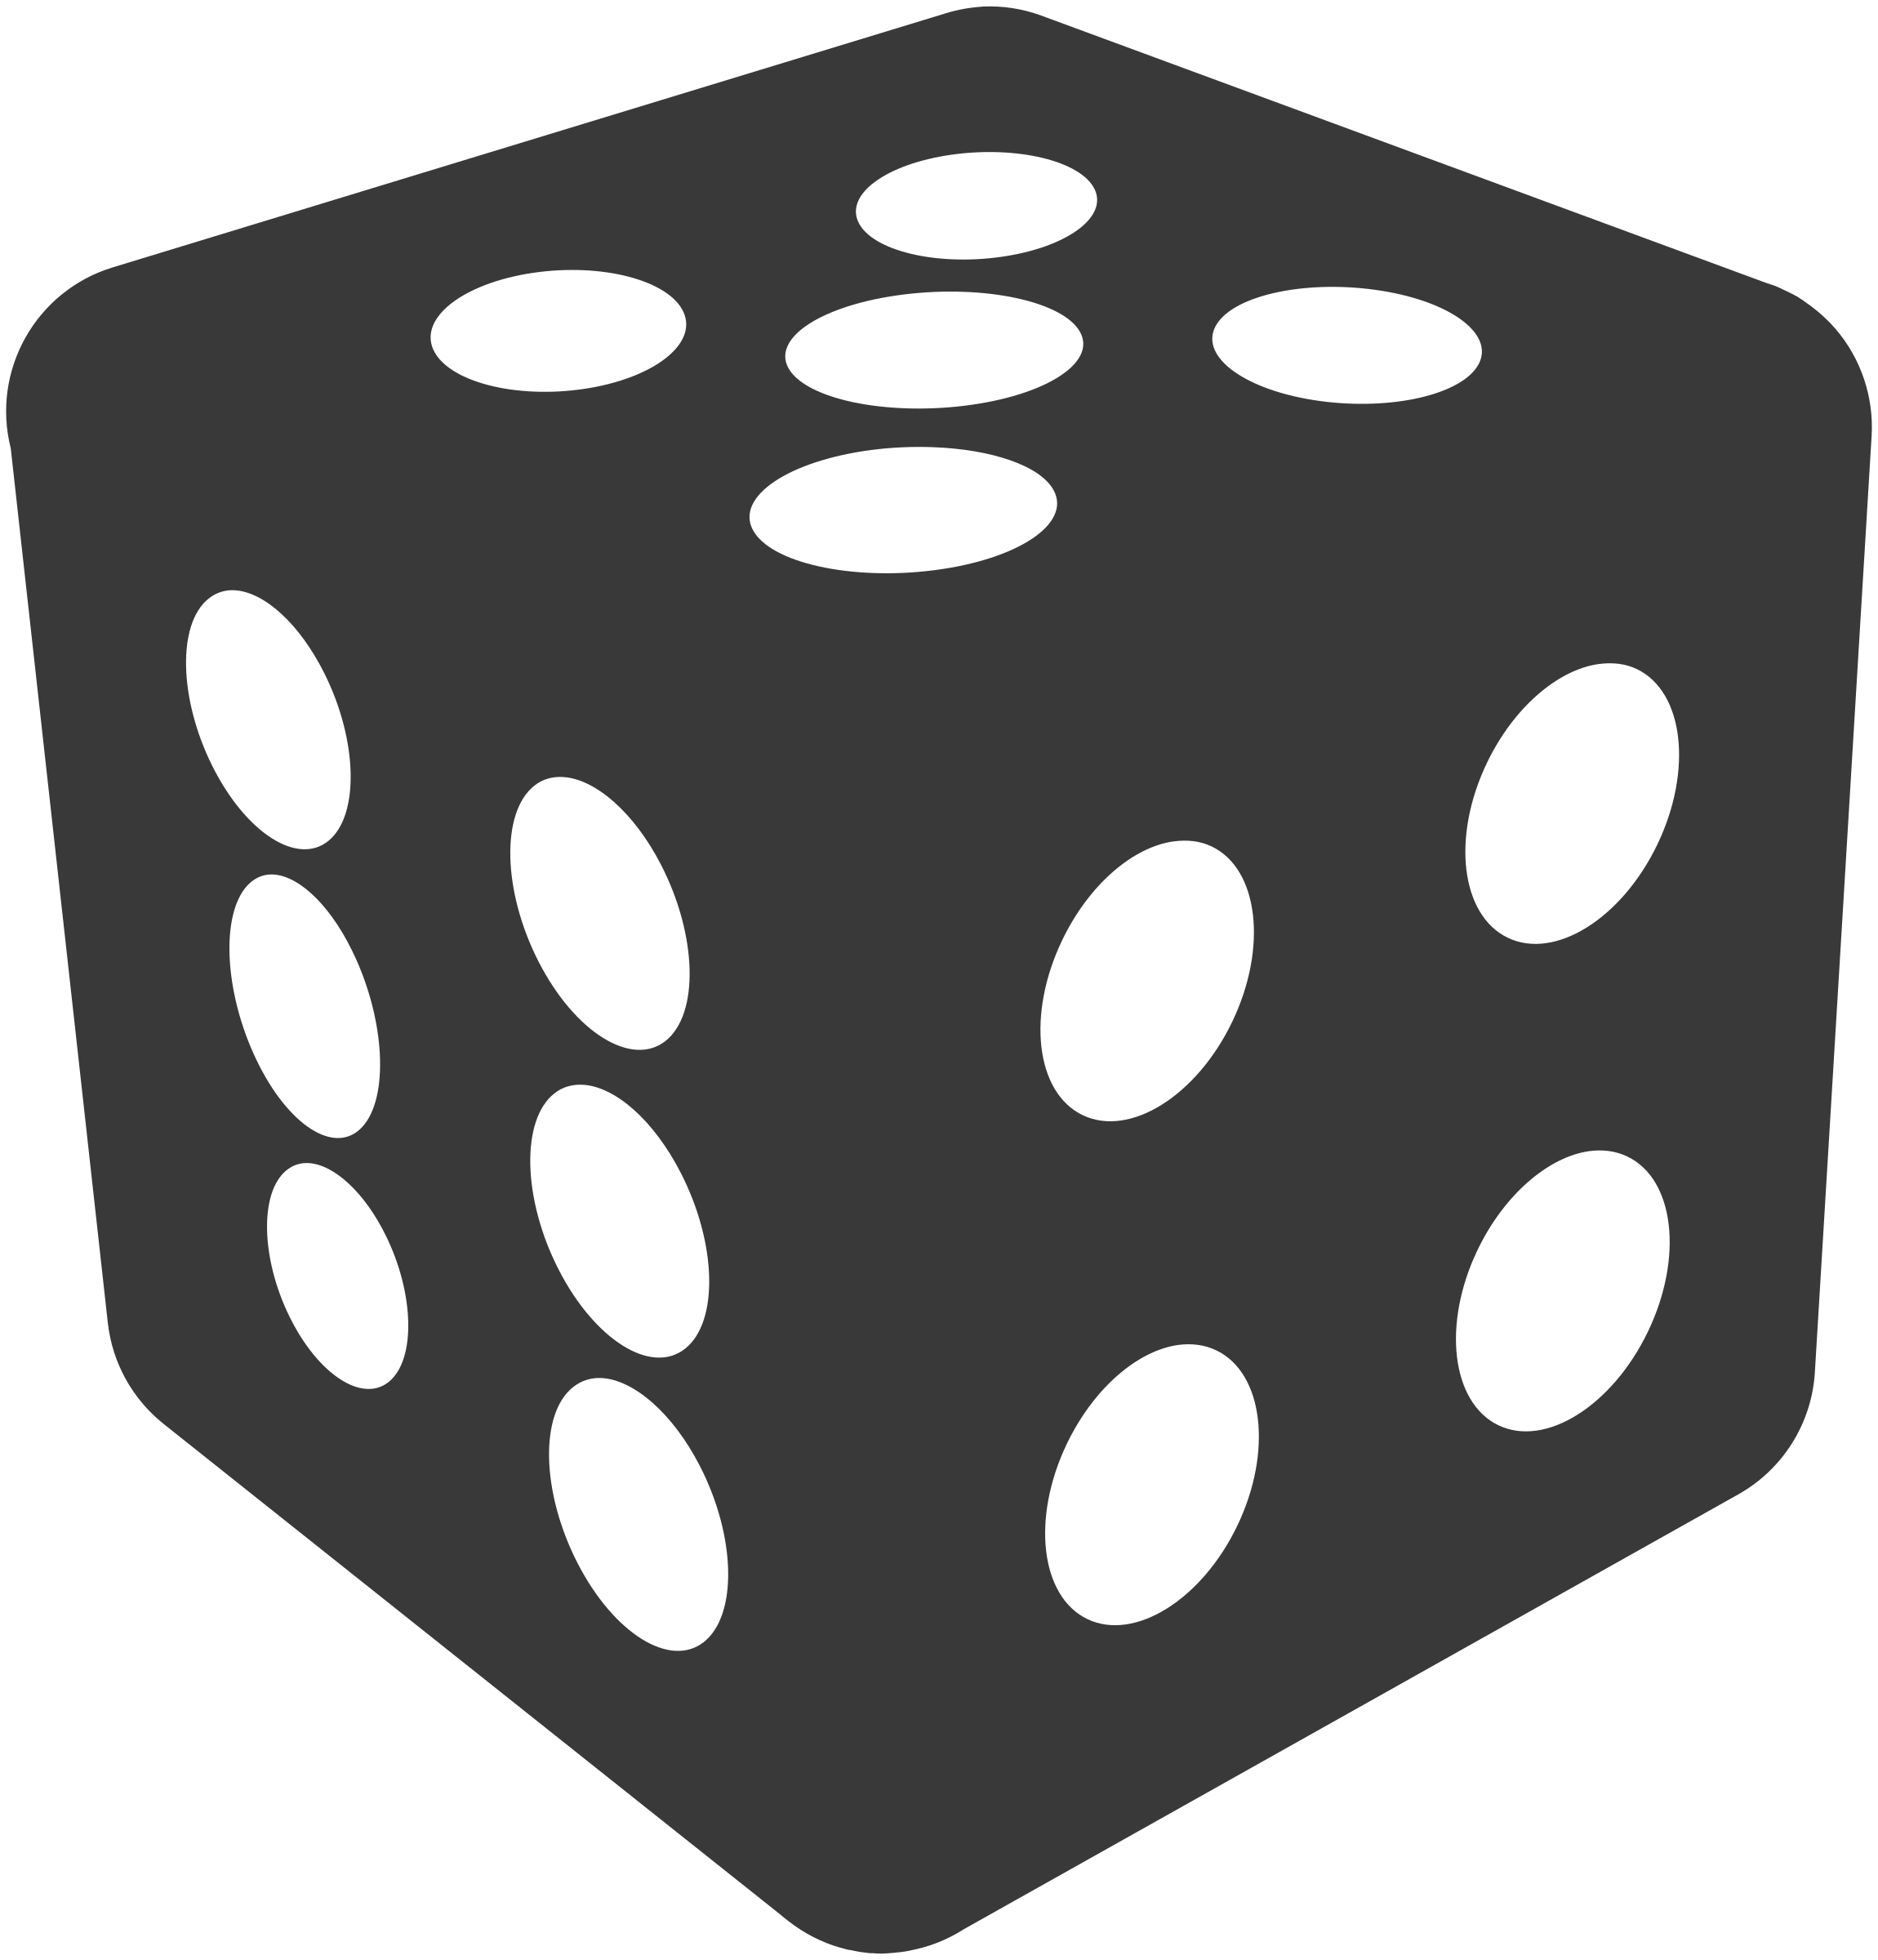 Dice clipart casino dice. Simple icons png free